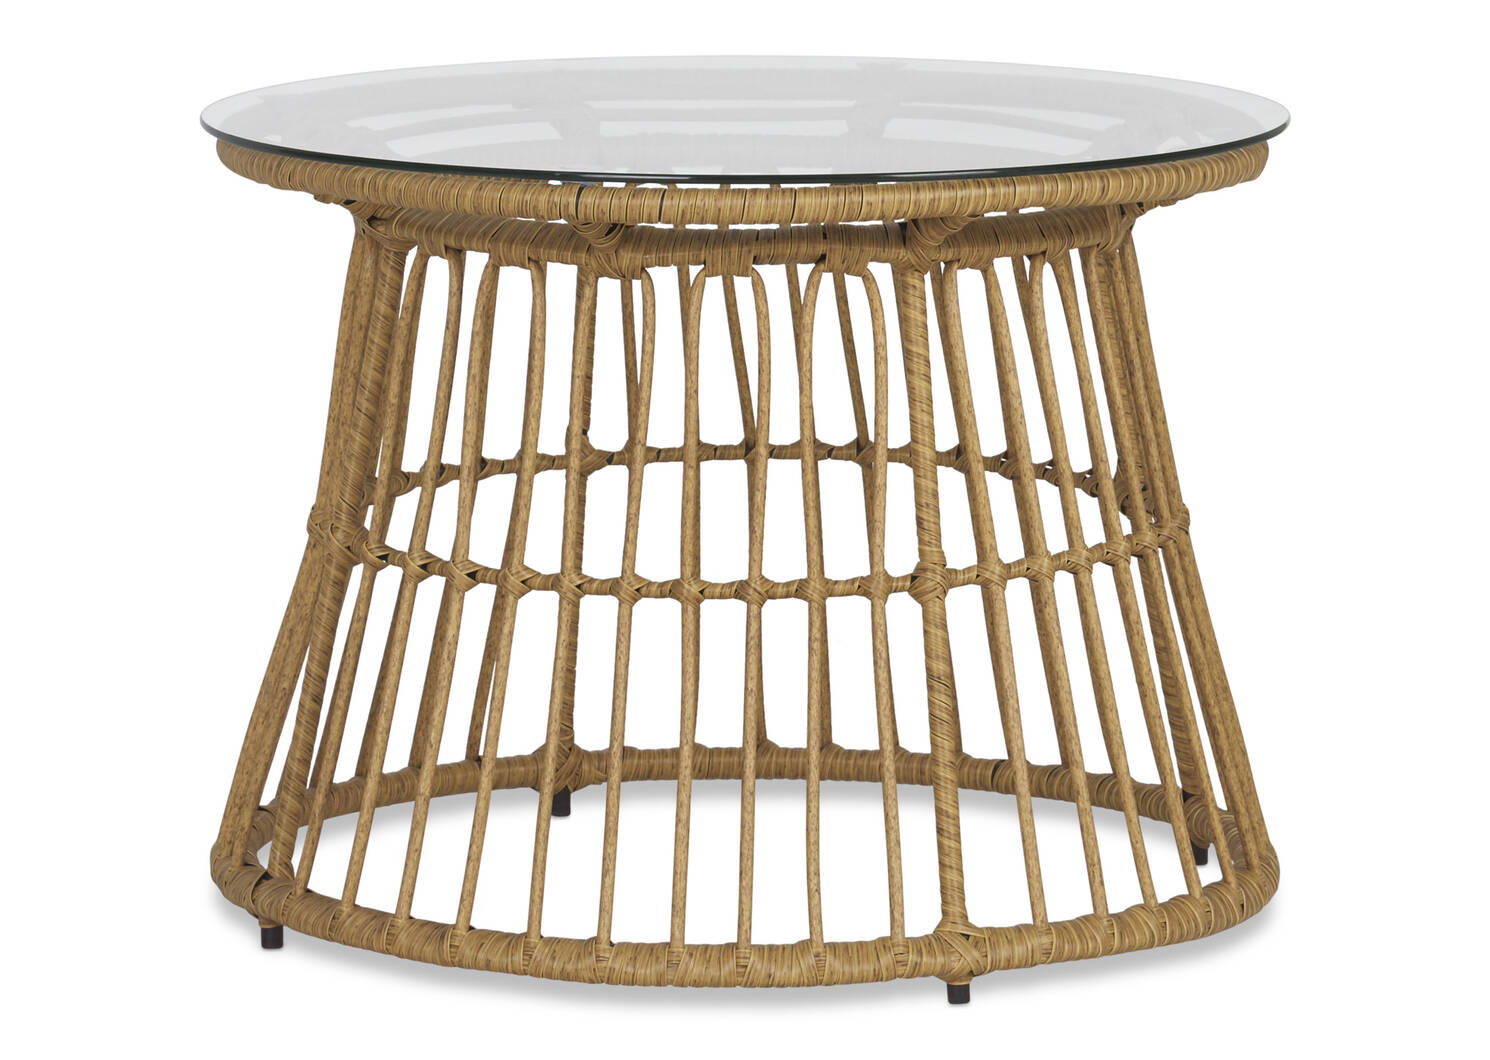 Table d'appoint Wren -Savanna